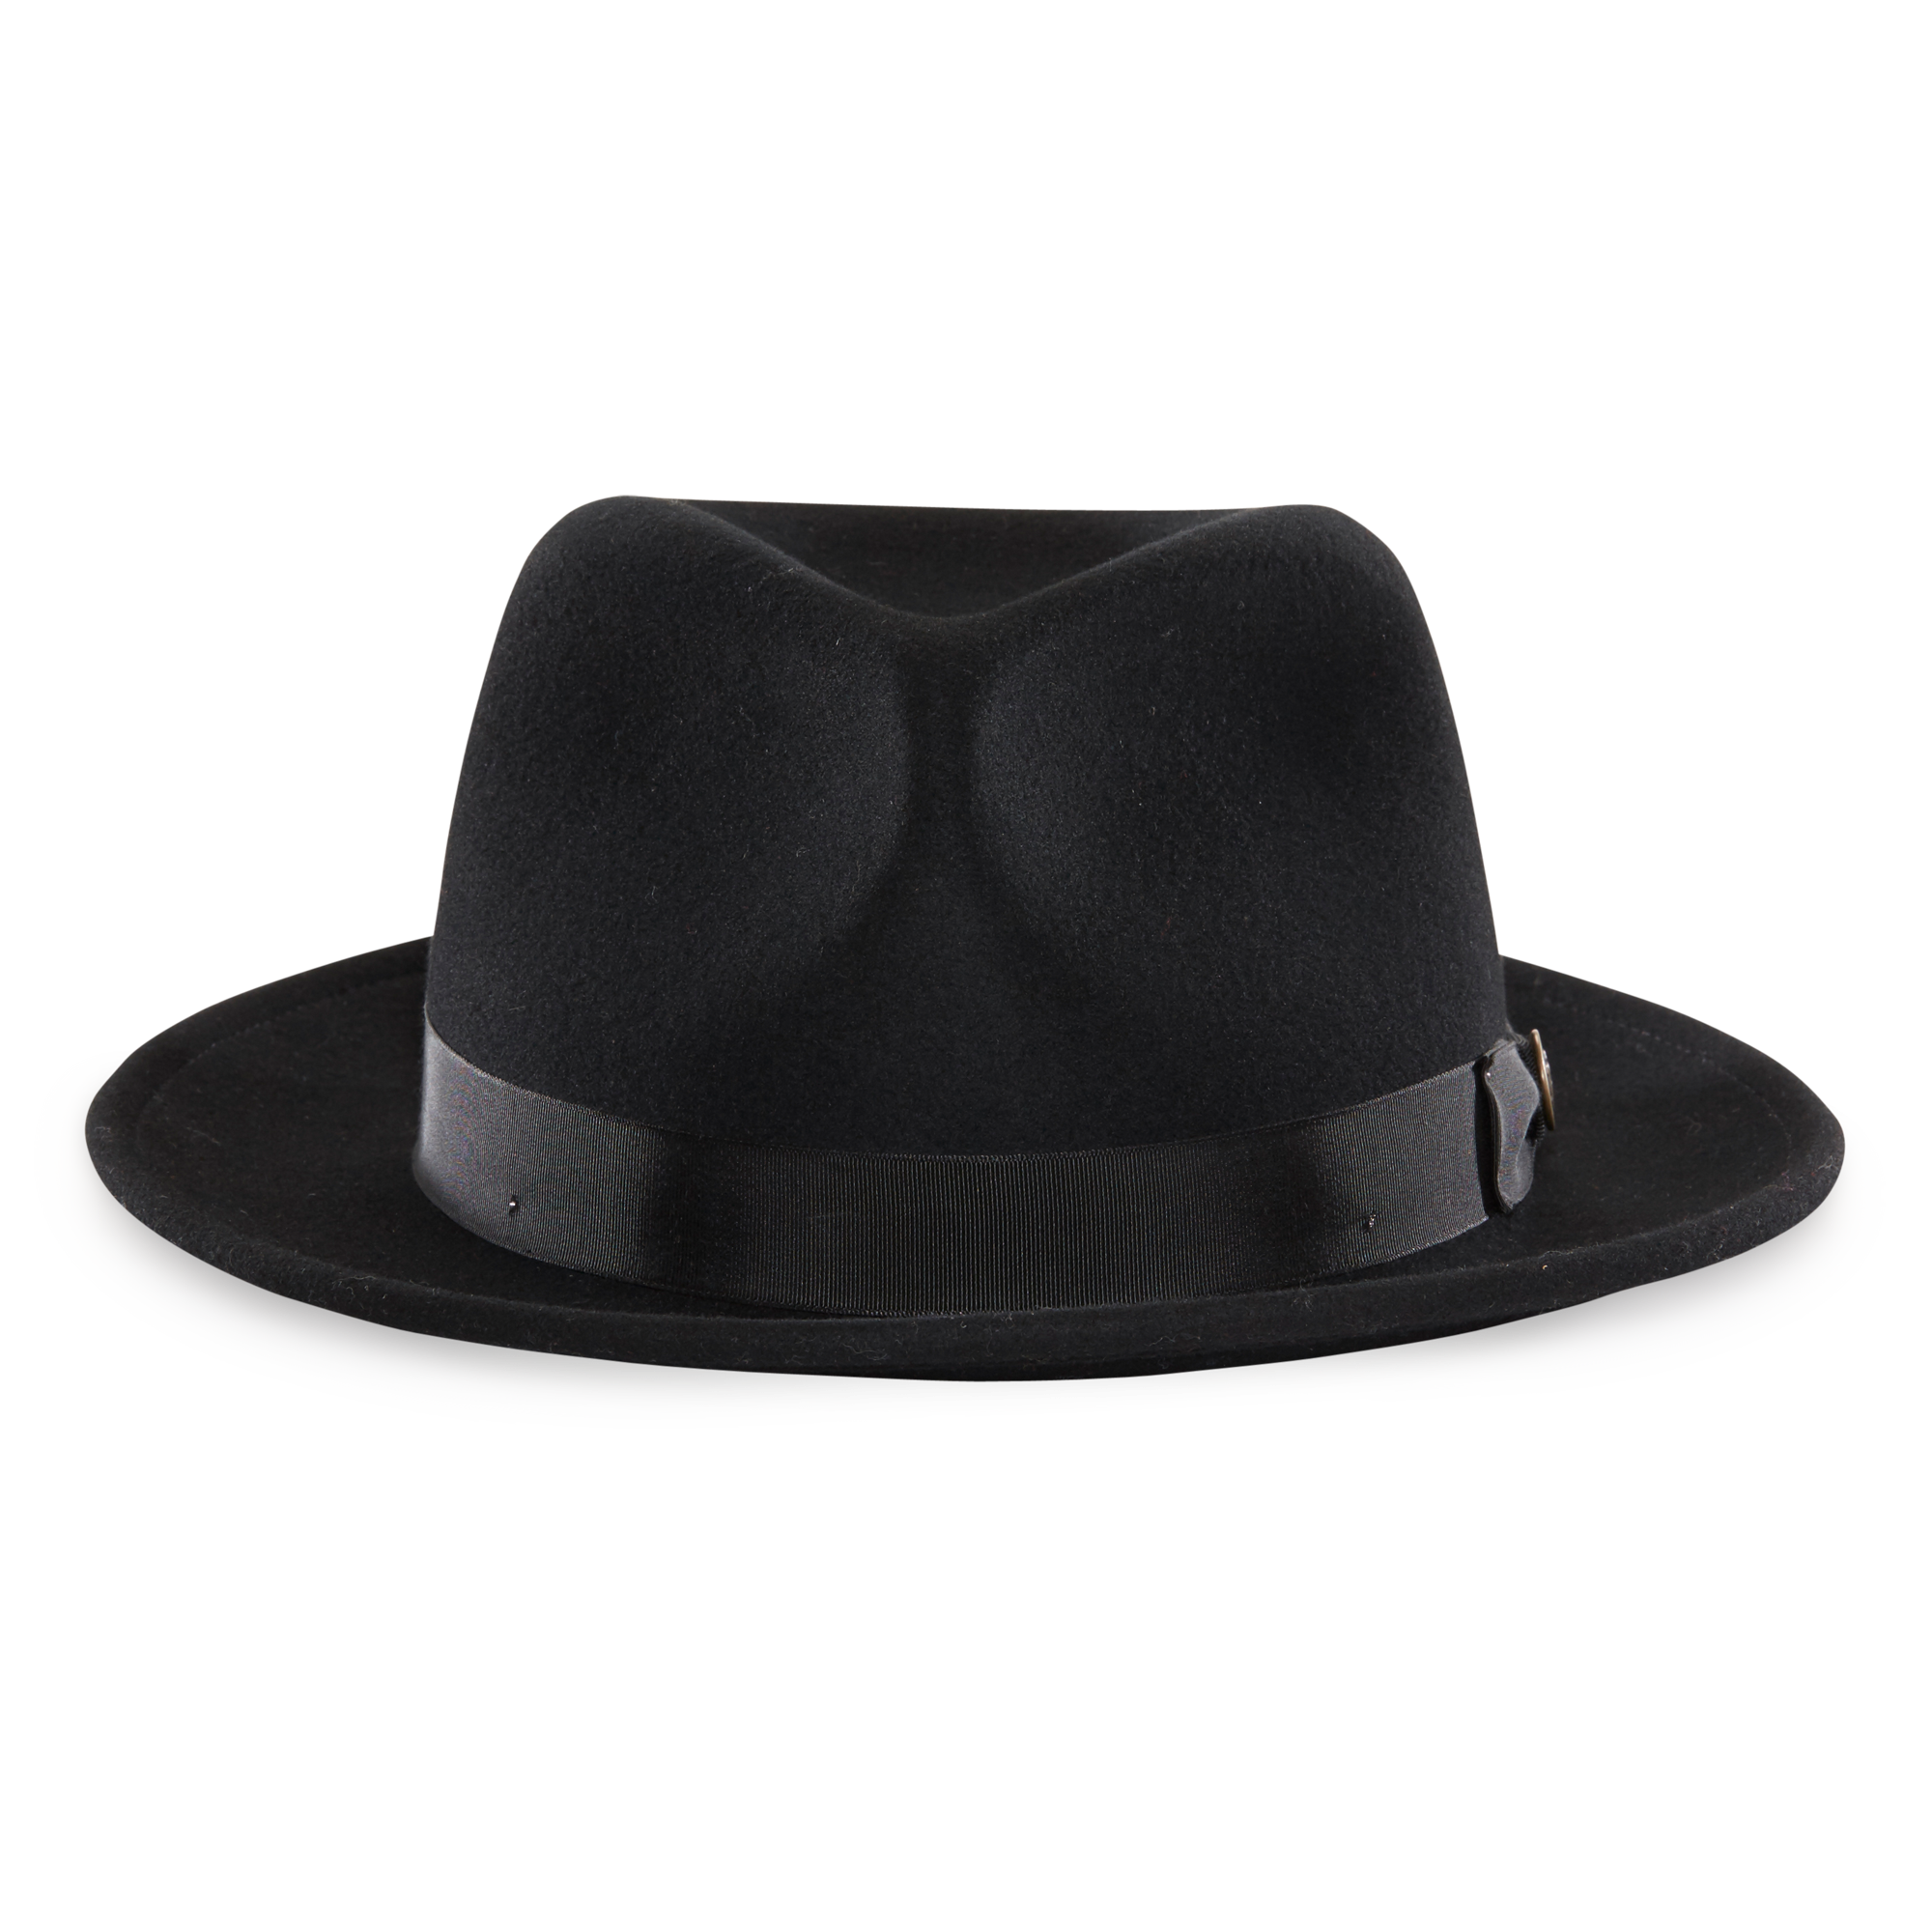 Black fedora png. The doctor felt hat